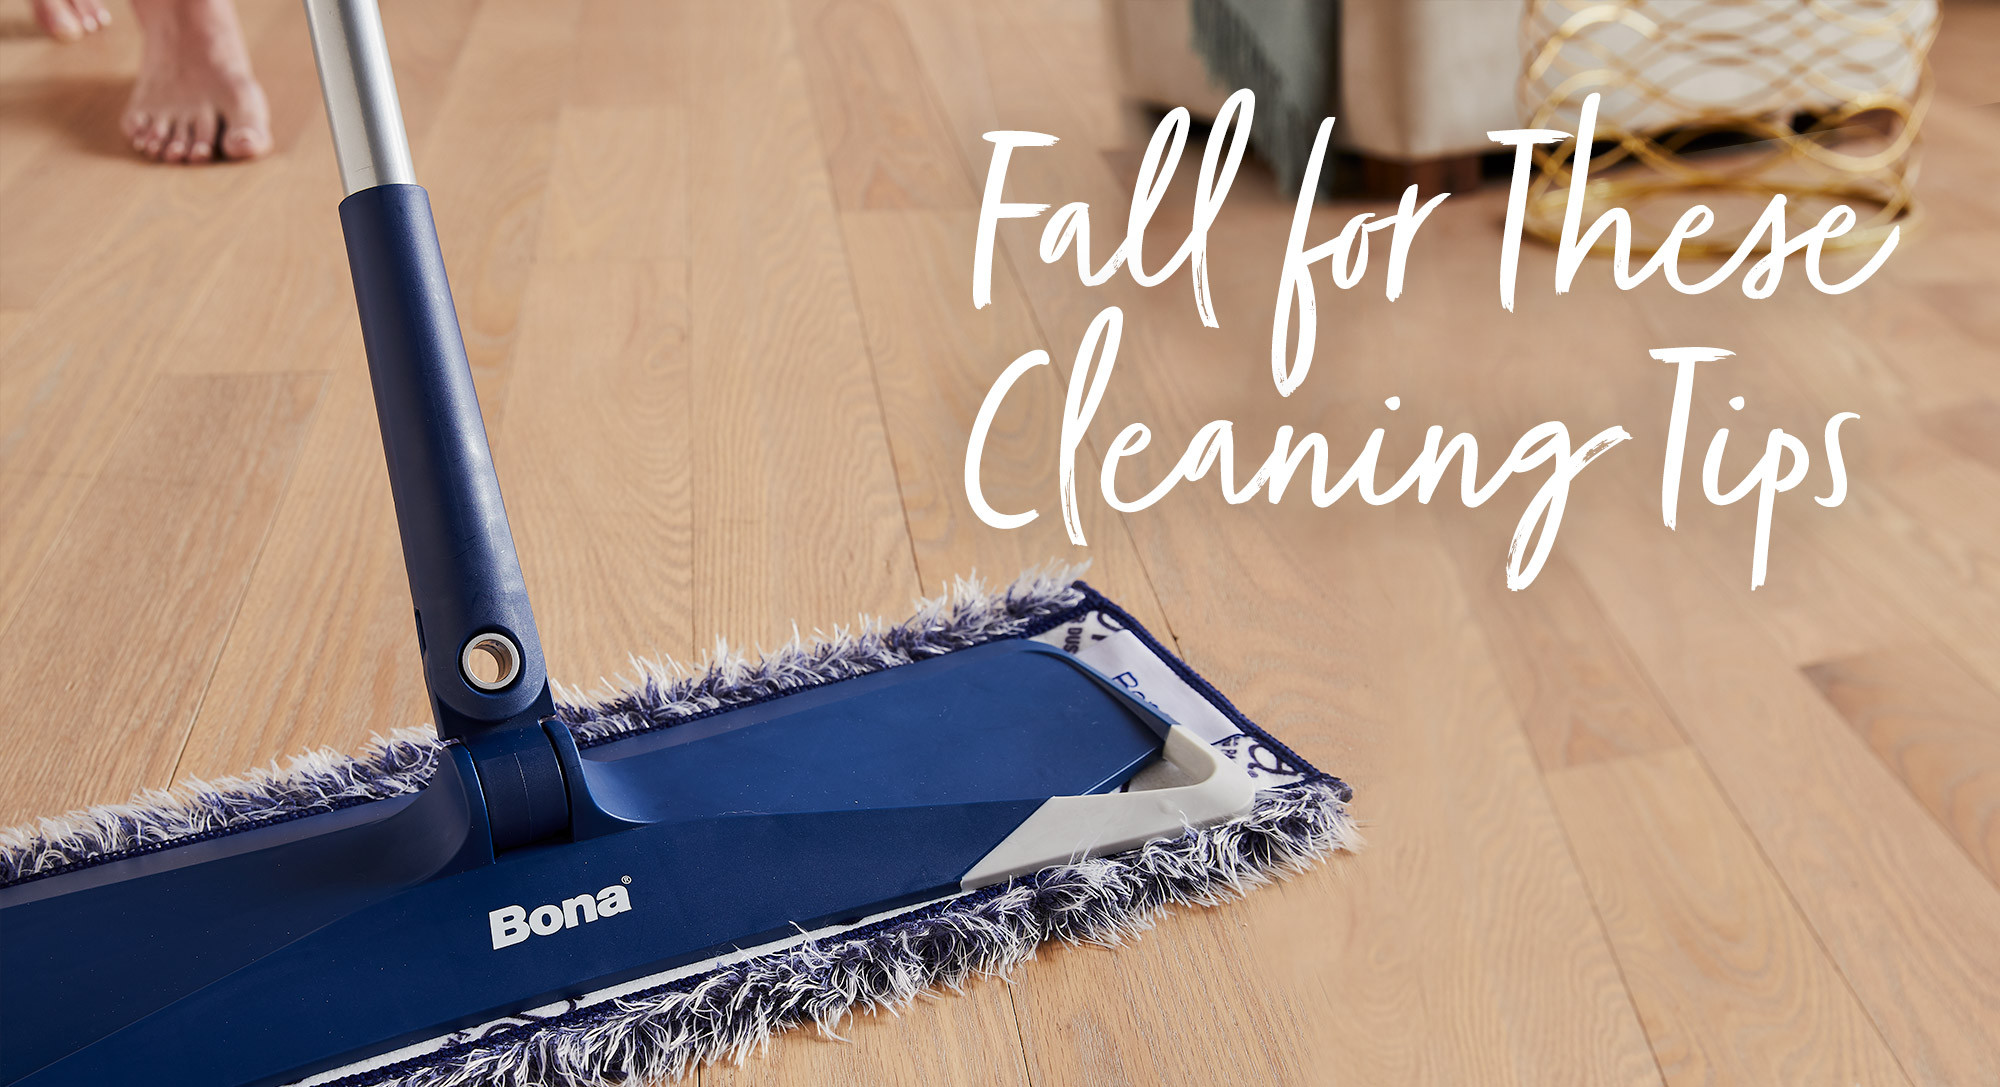 cleaning waxed hardwood floors of home bona us within fall feature2